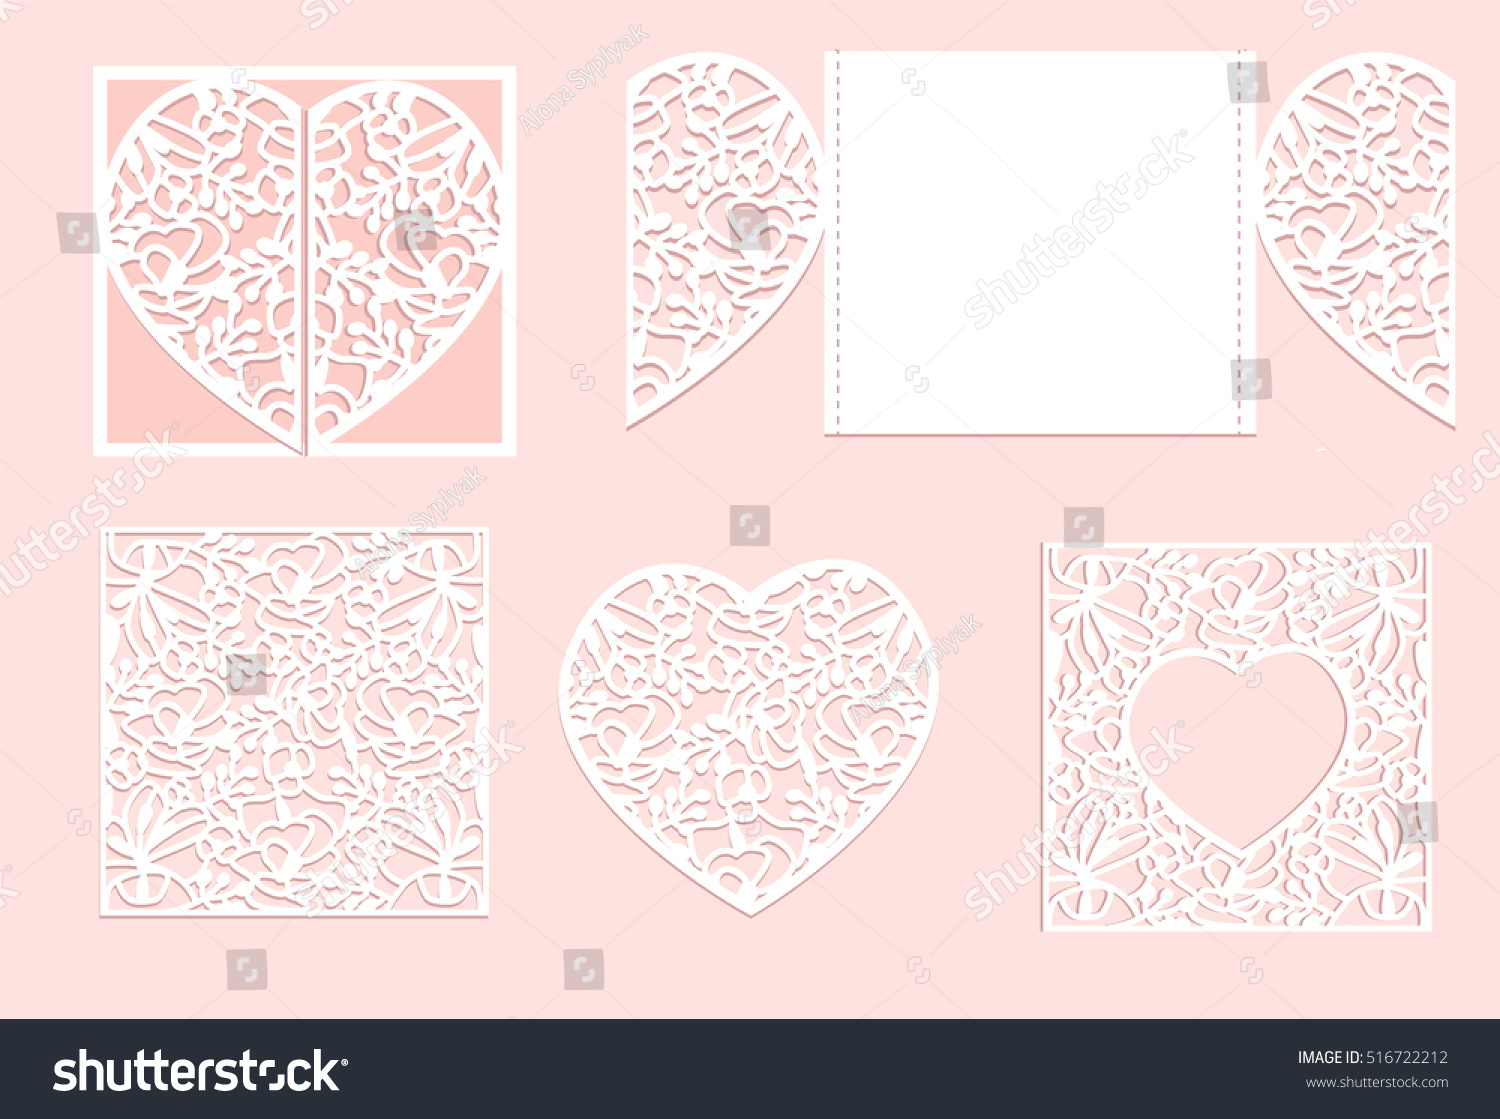 Vector heart paper cutting White heart made of paper Laser cut vector Wedding invitation or greeting card with flowers Invitation envelope template Use for laser cutting Valentine Day Lace